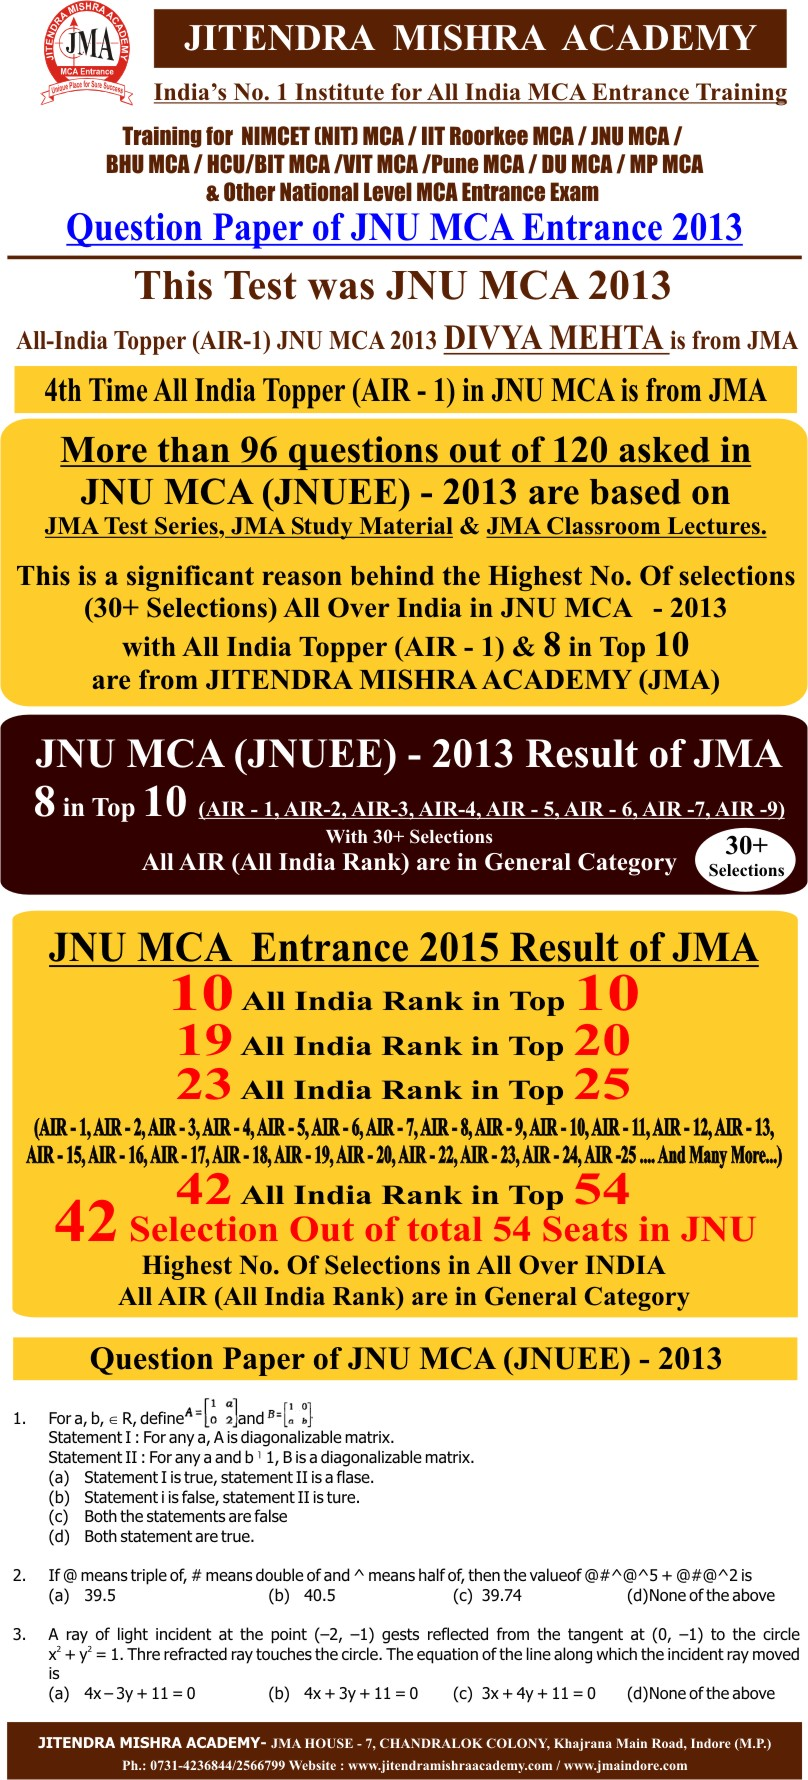 JNU 2013 PAPER (FIRST PAGE)